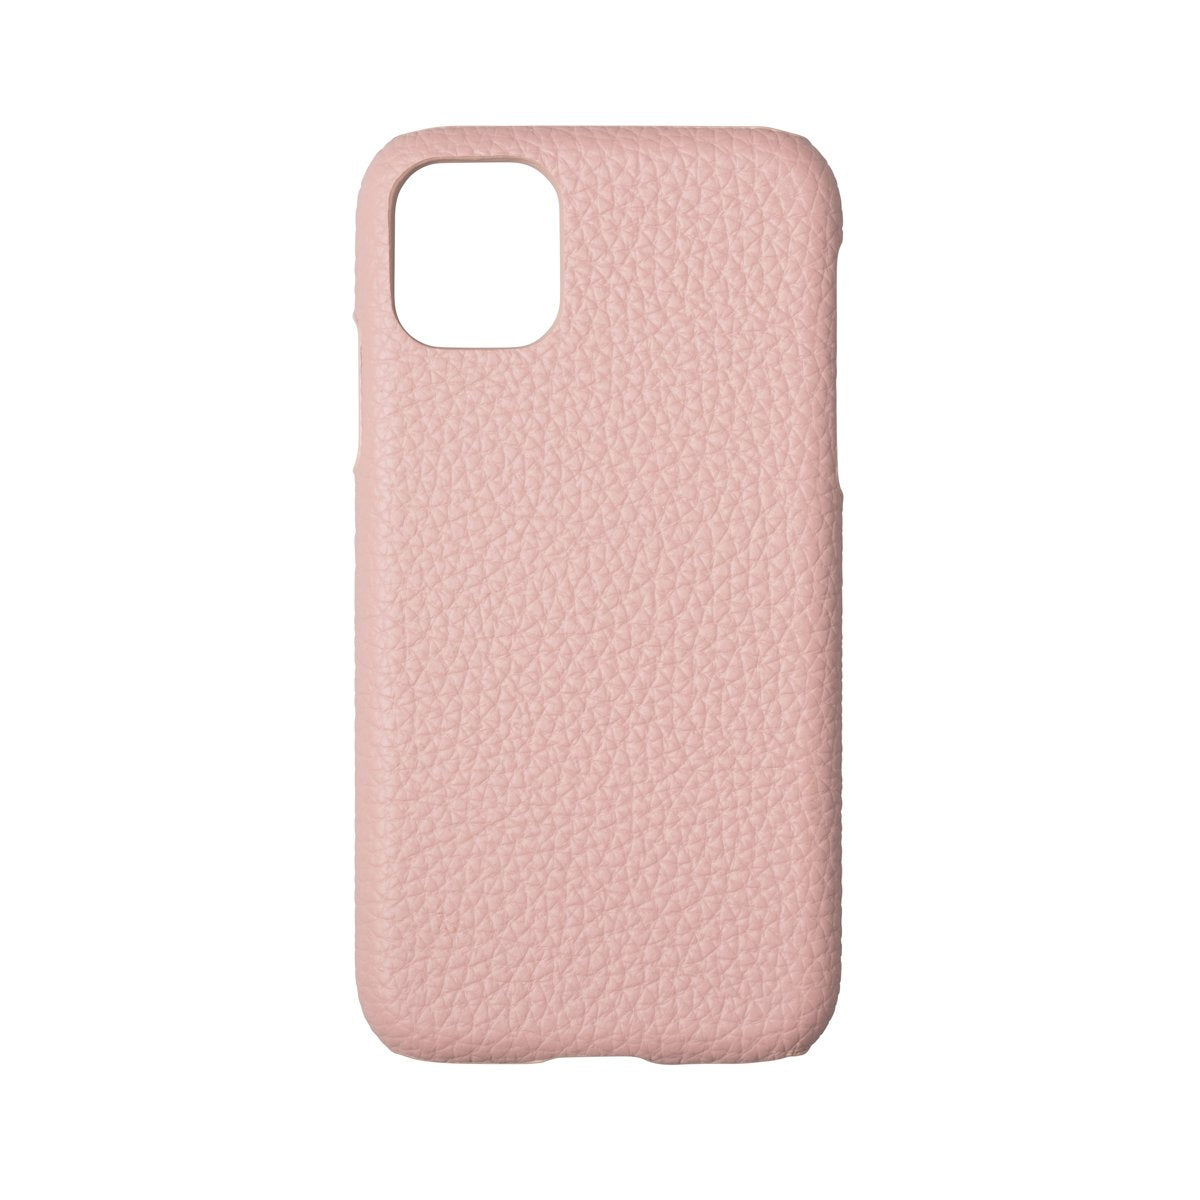 Blush Pink Phone Case (iPhone 11  Pro)